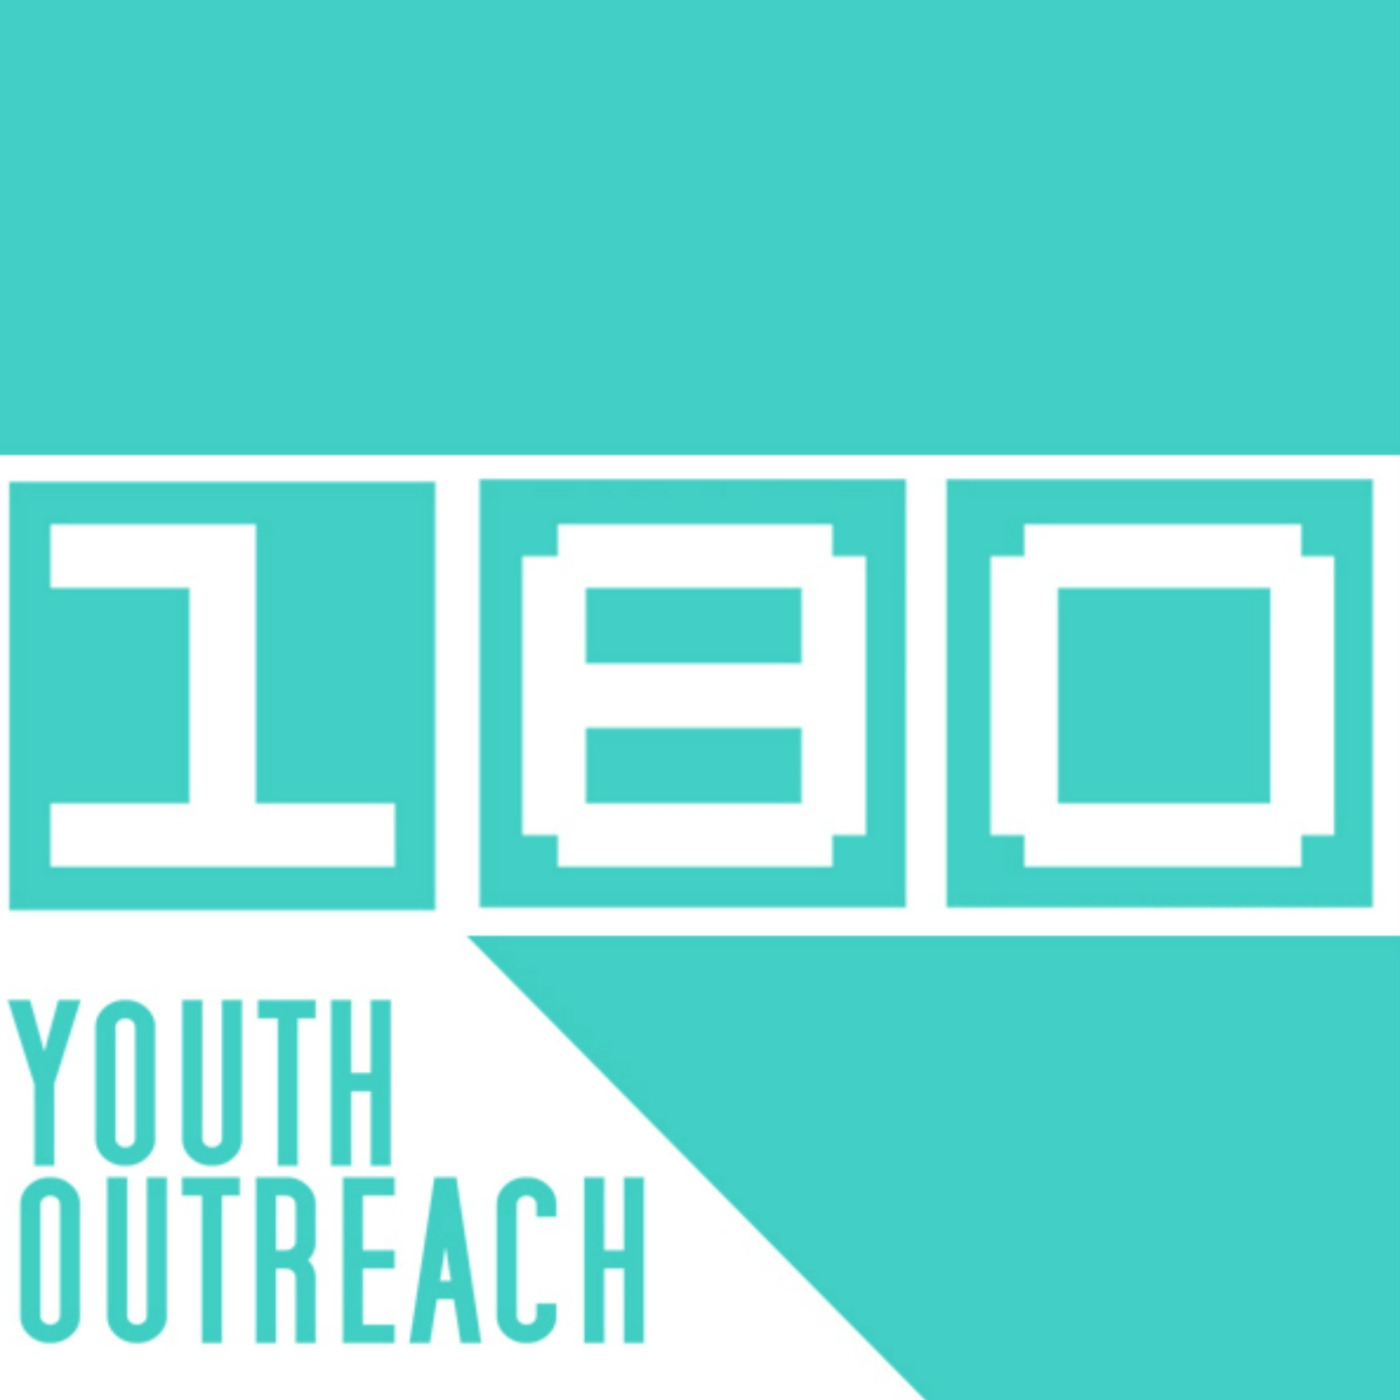 180 Youth Outreach